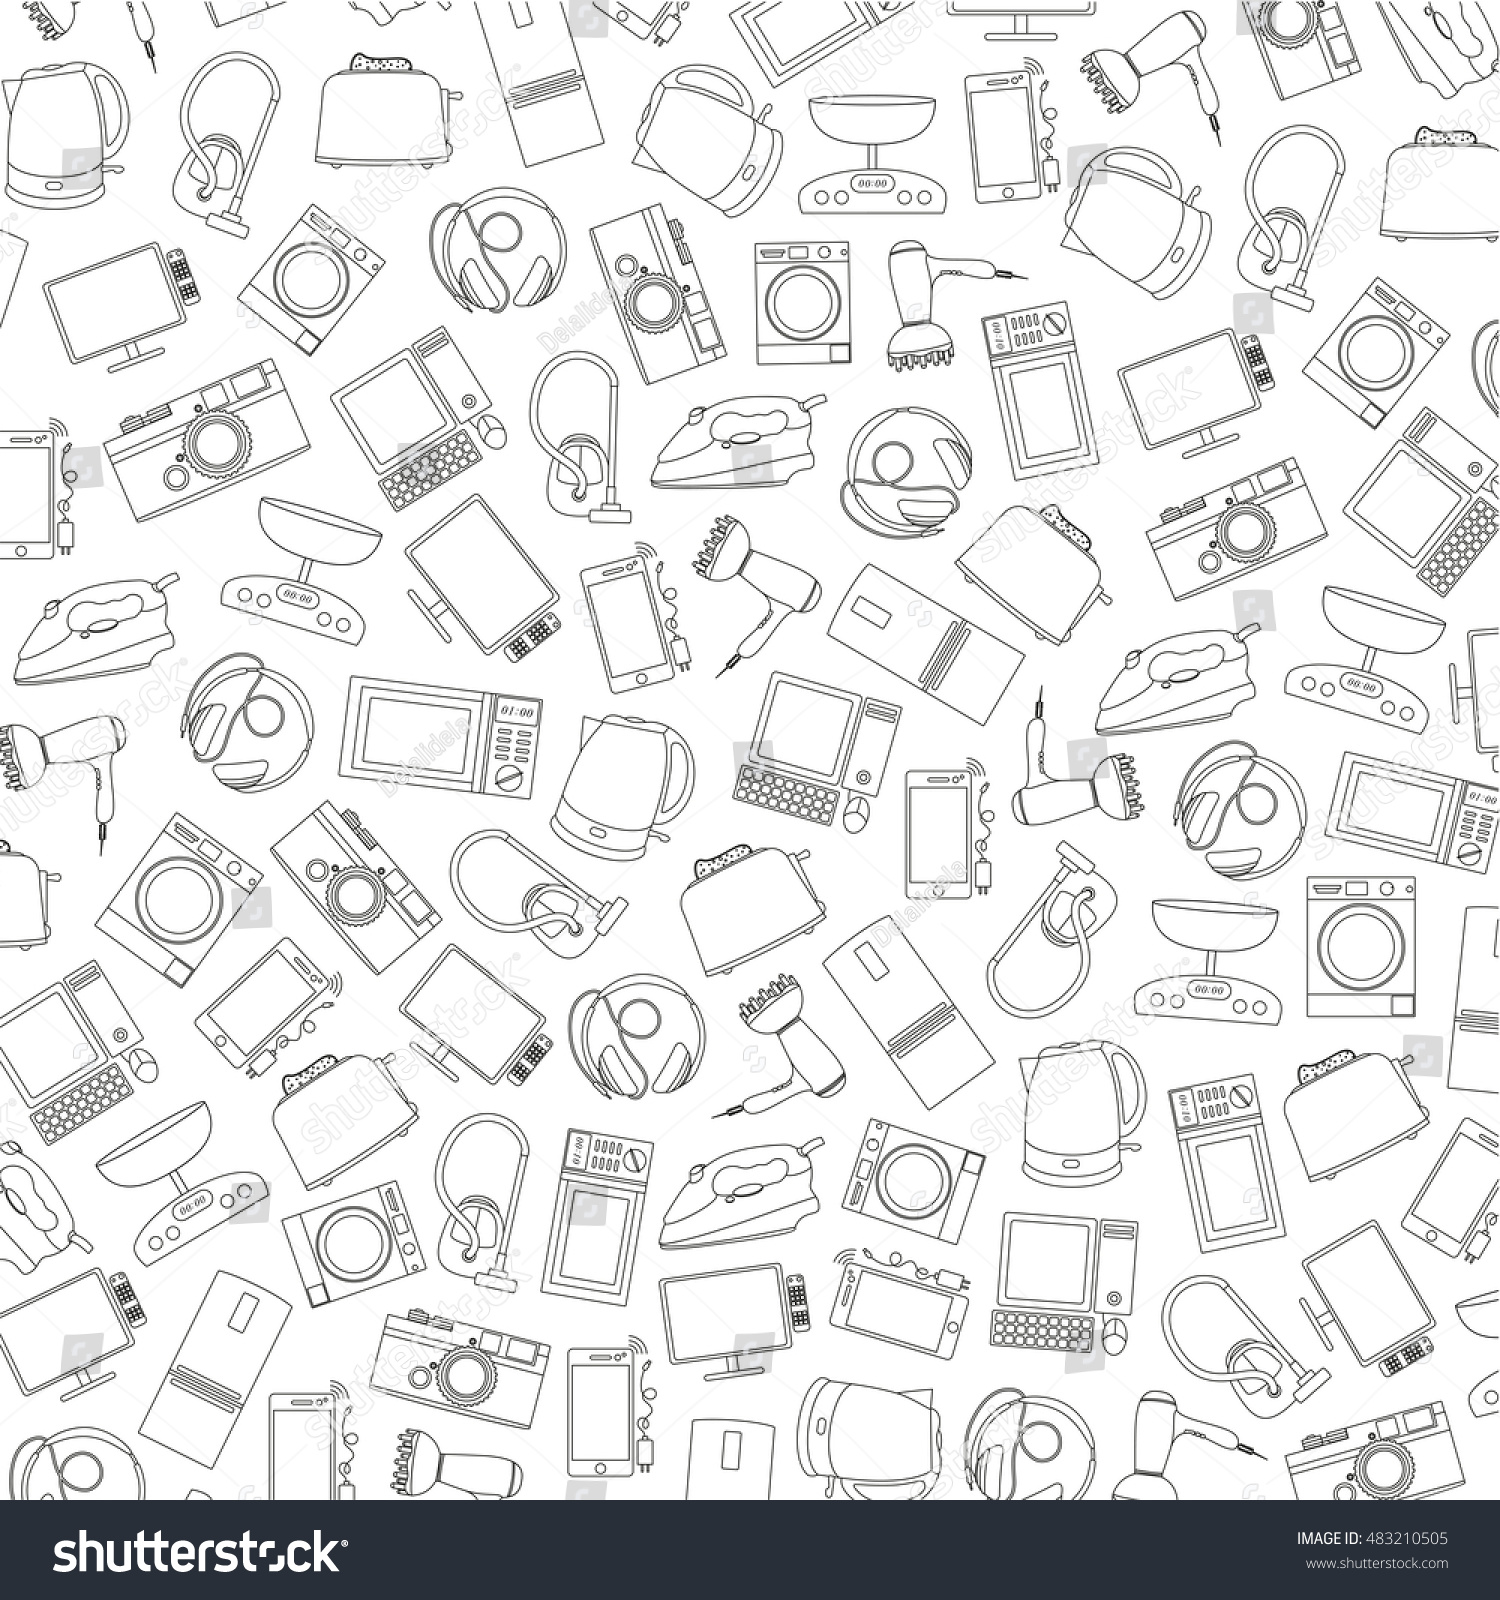 vector pattern of hand-drawn icons of home appliances